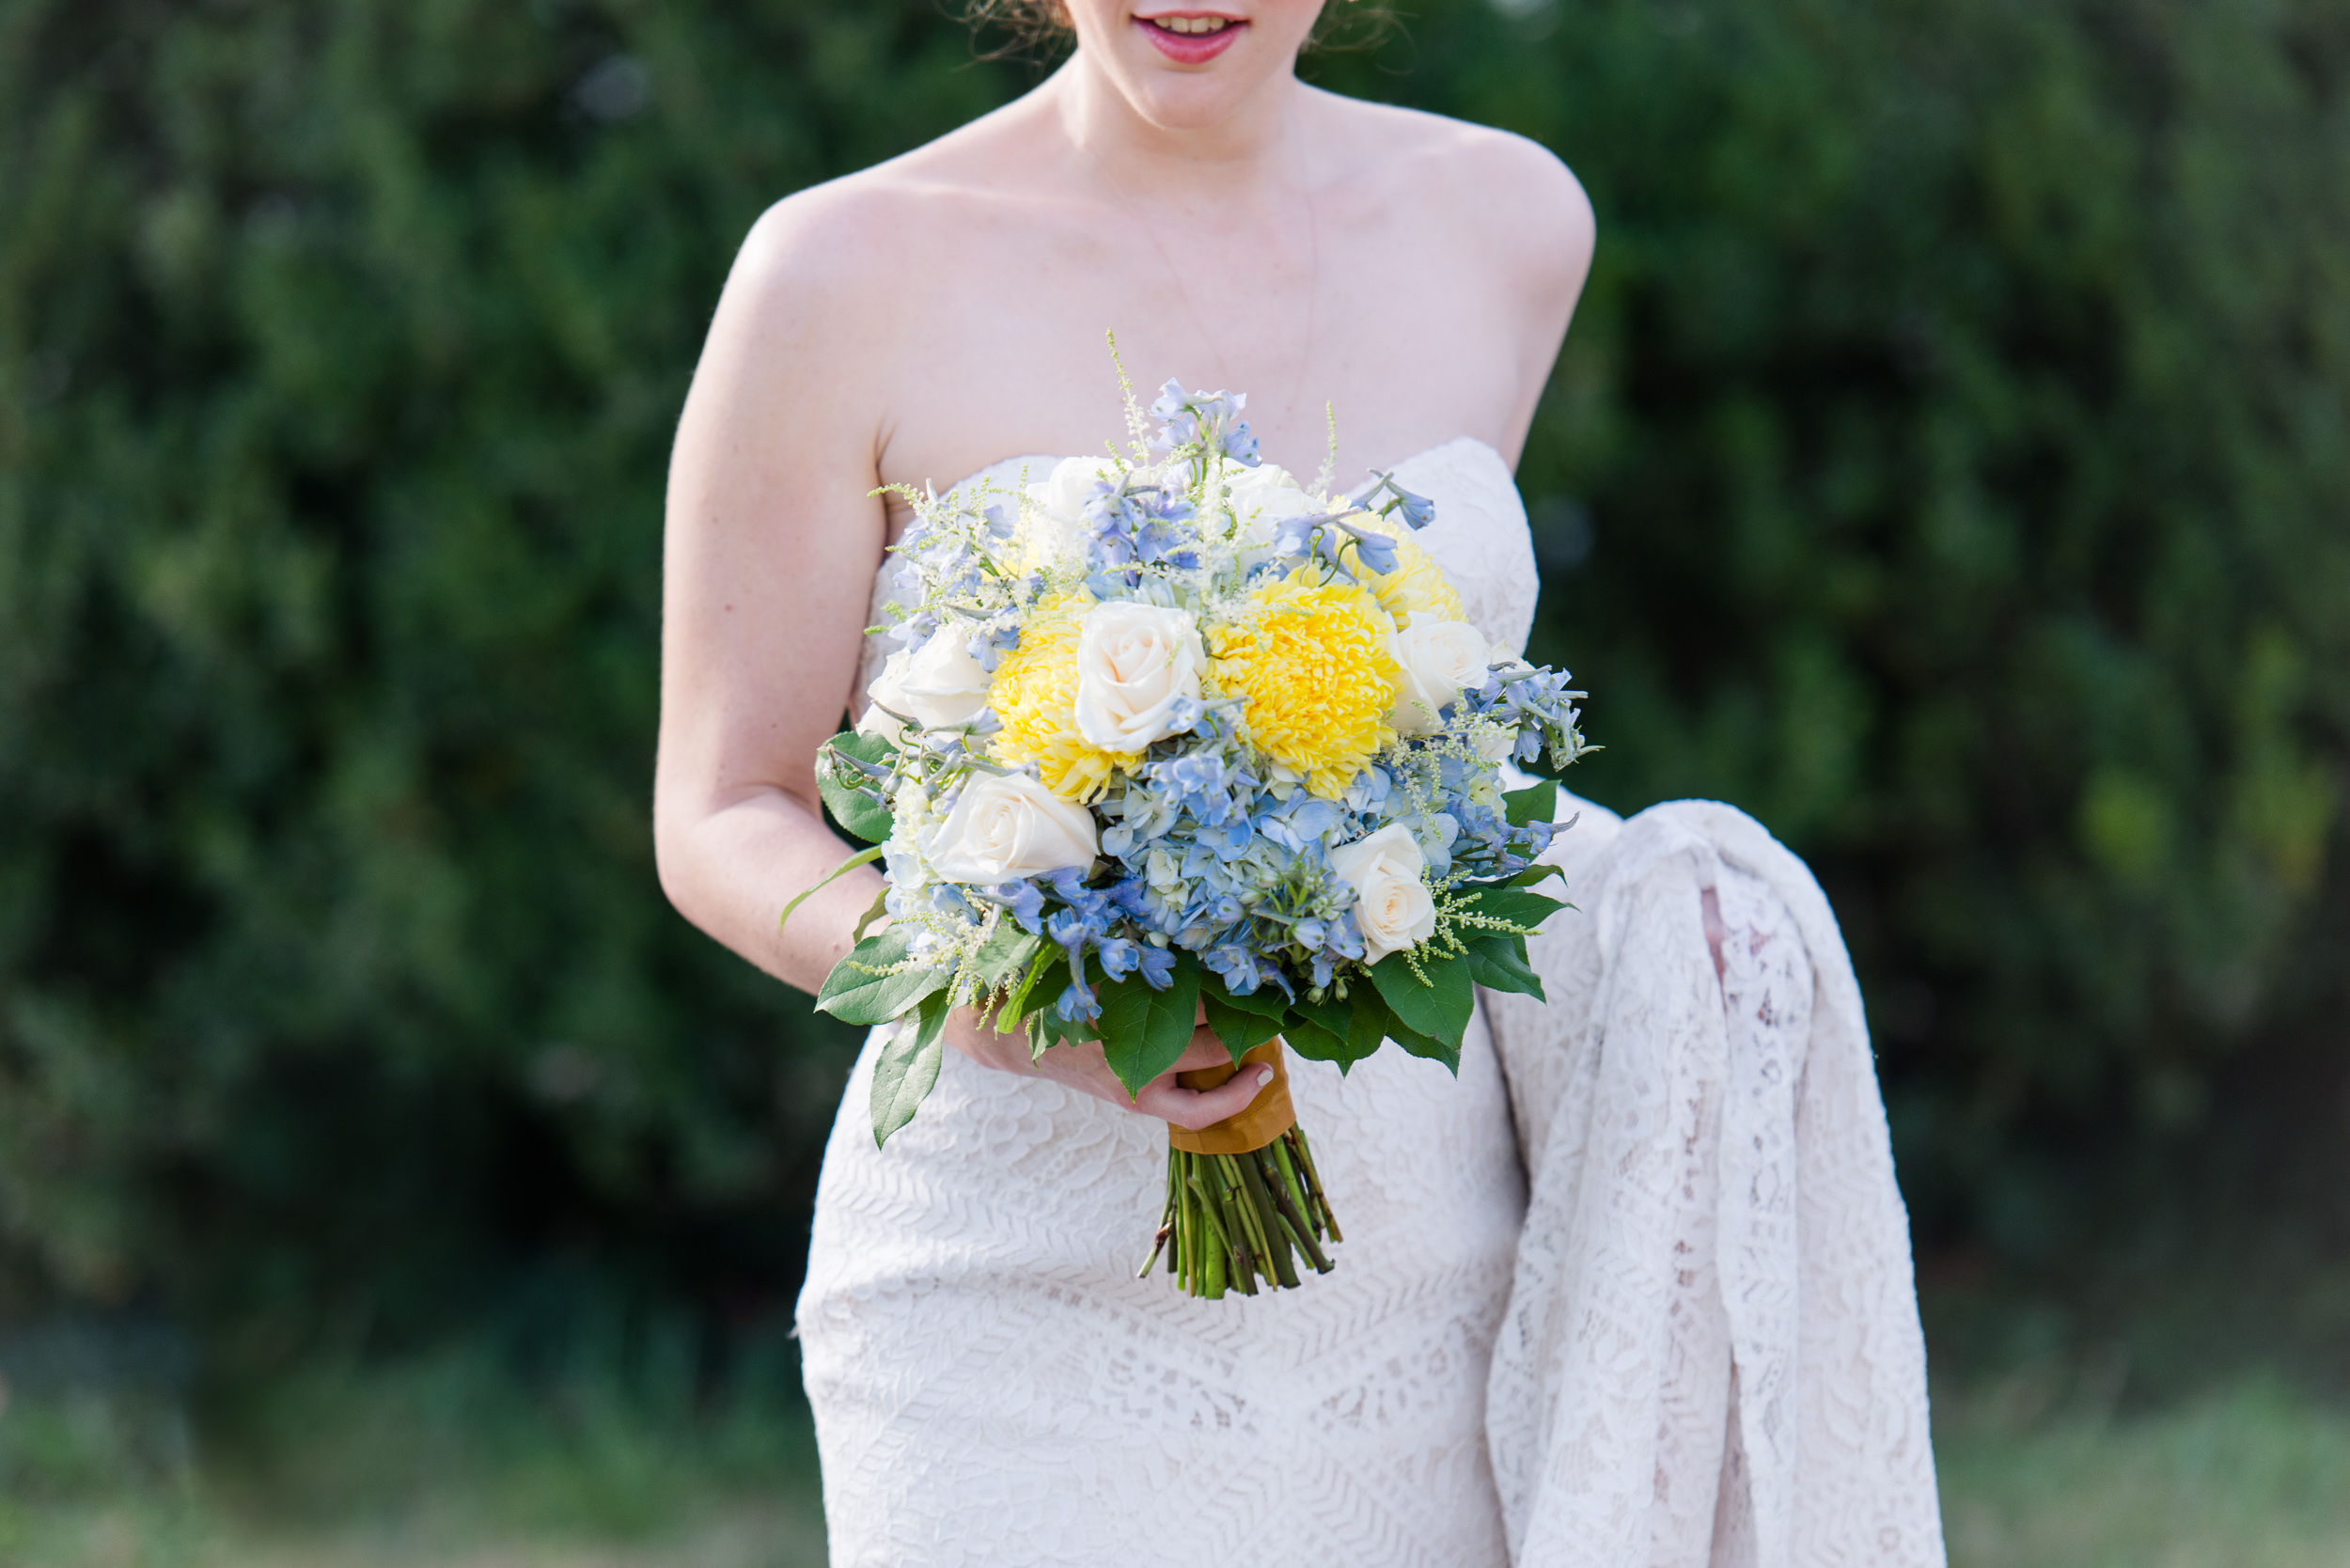 A bride holding the train of her romantic lace wedding dress and blue and yellow spring bouquet before her wedding at Oatlands Historic House and Gardens in Leesburg, Virginia